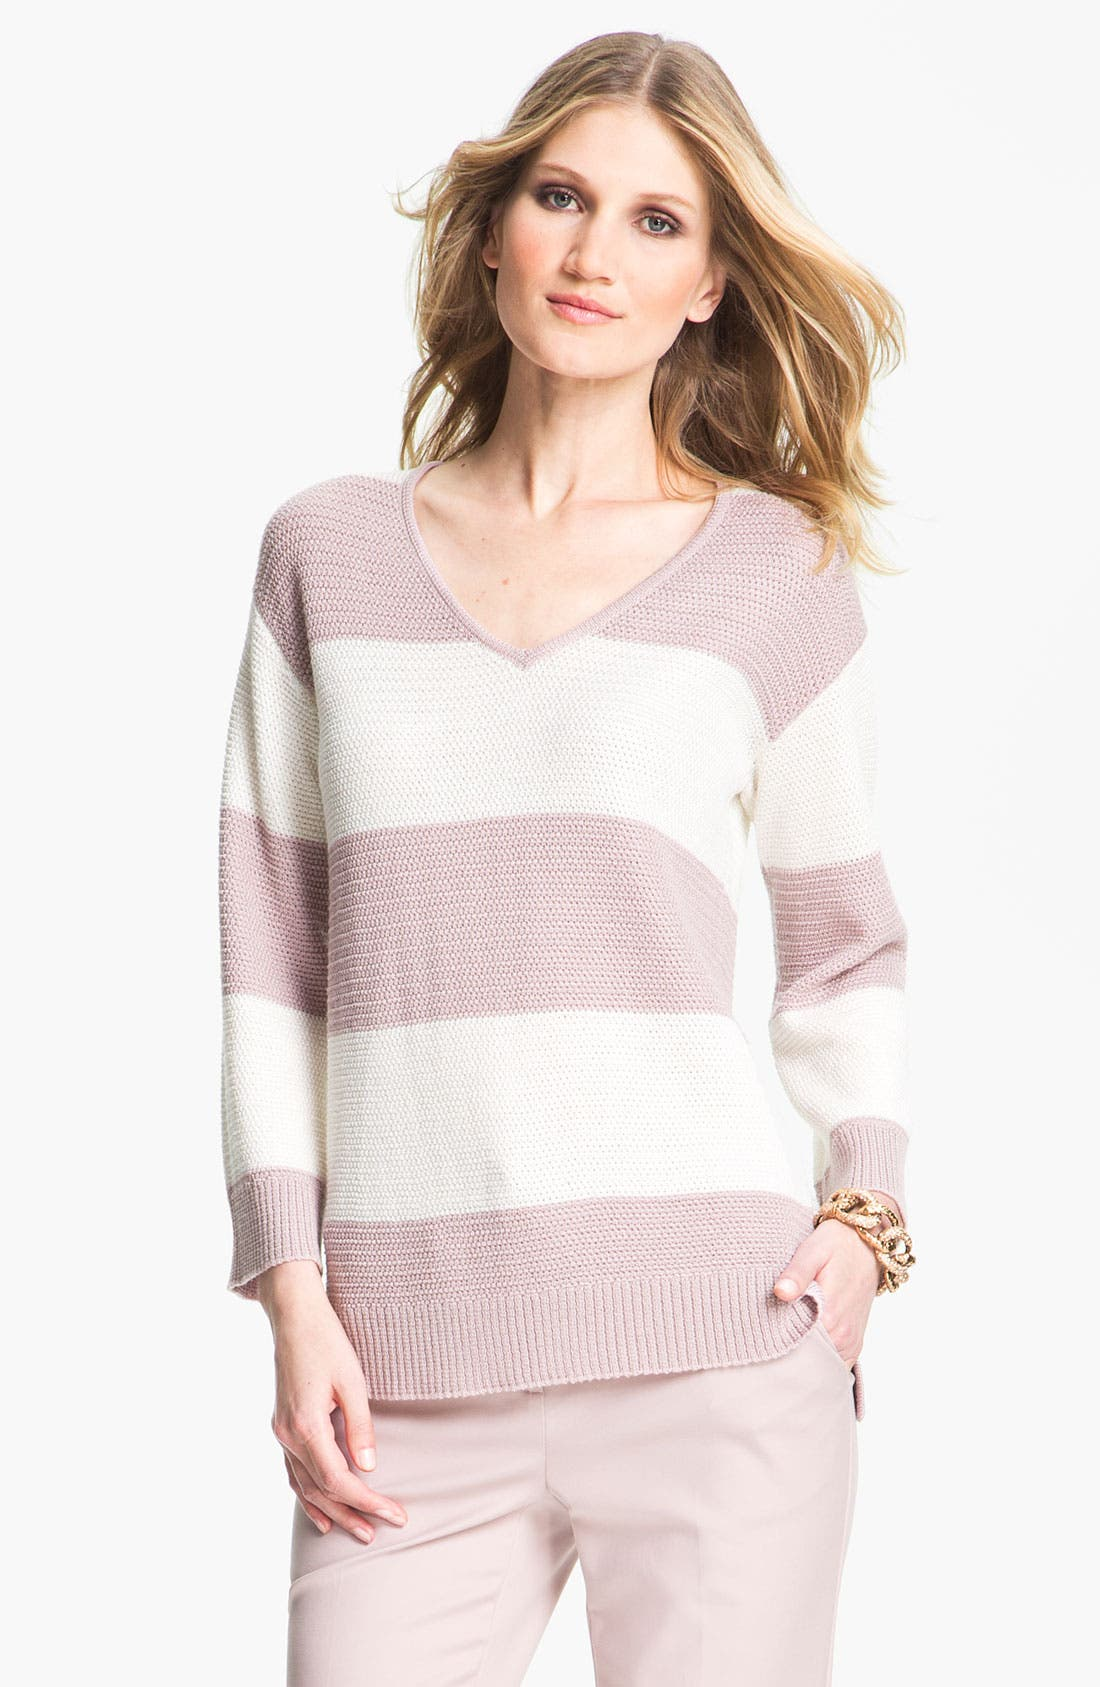 Main Image - St. John Yellow Label Stripe Ottoman Knit Sweater